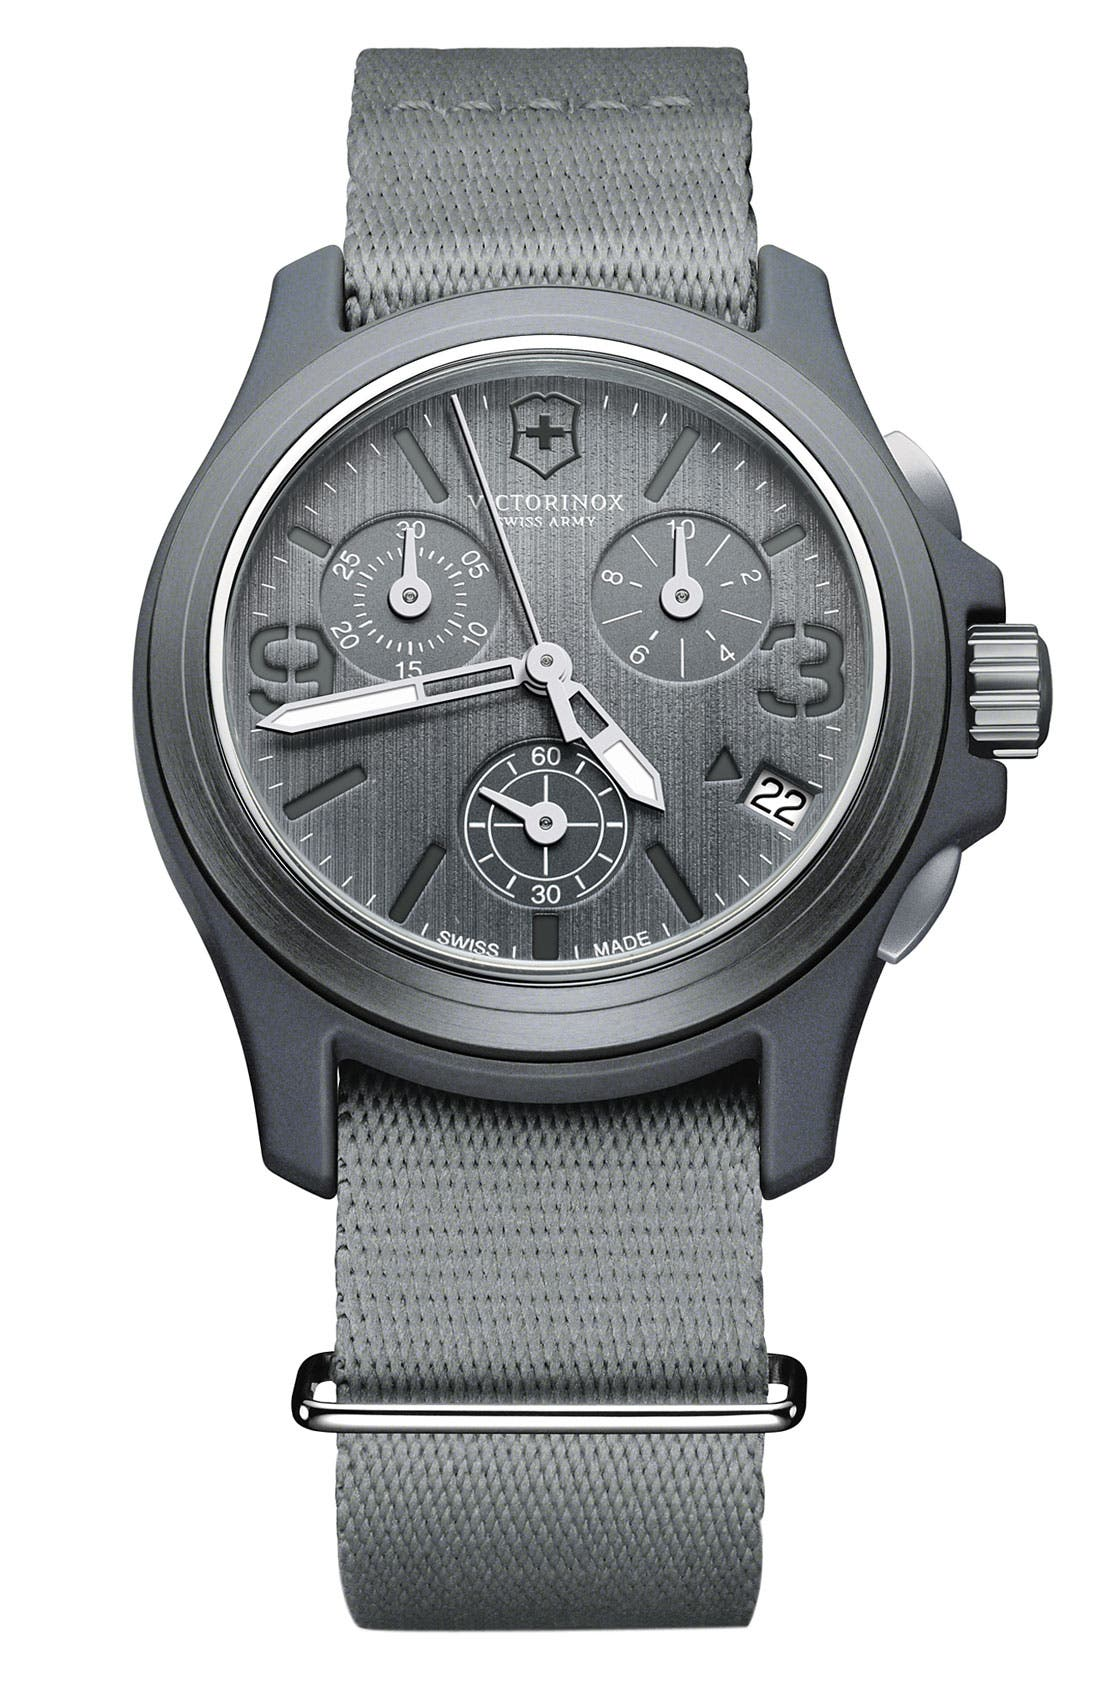 Alternate Image 1 Selected - Victorinox Swiss Army® 'Original' Chronograph Watch, 40mm